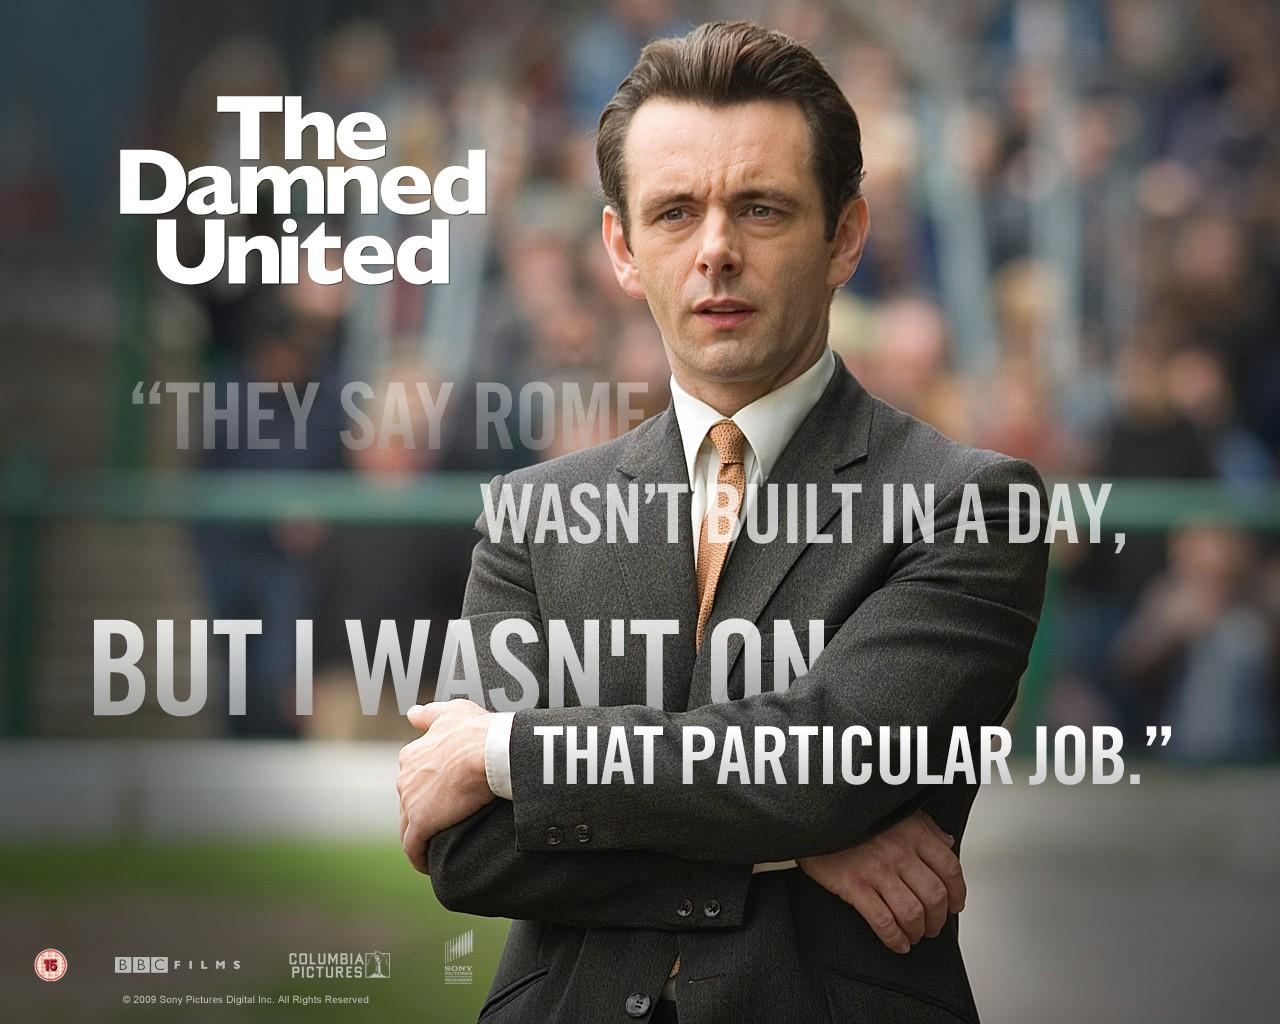 ���� Damned United 1280x1024